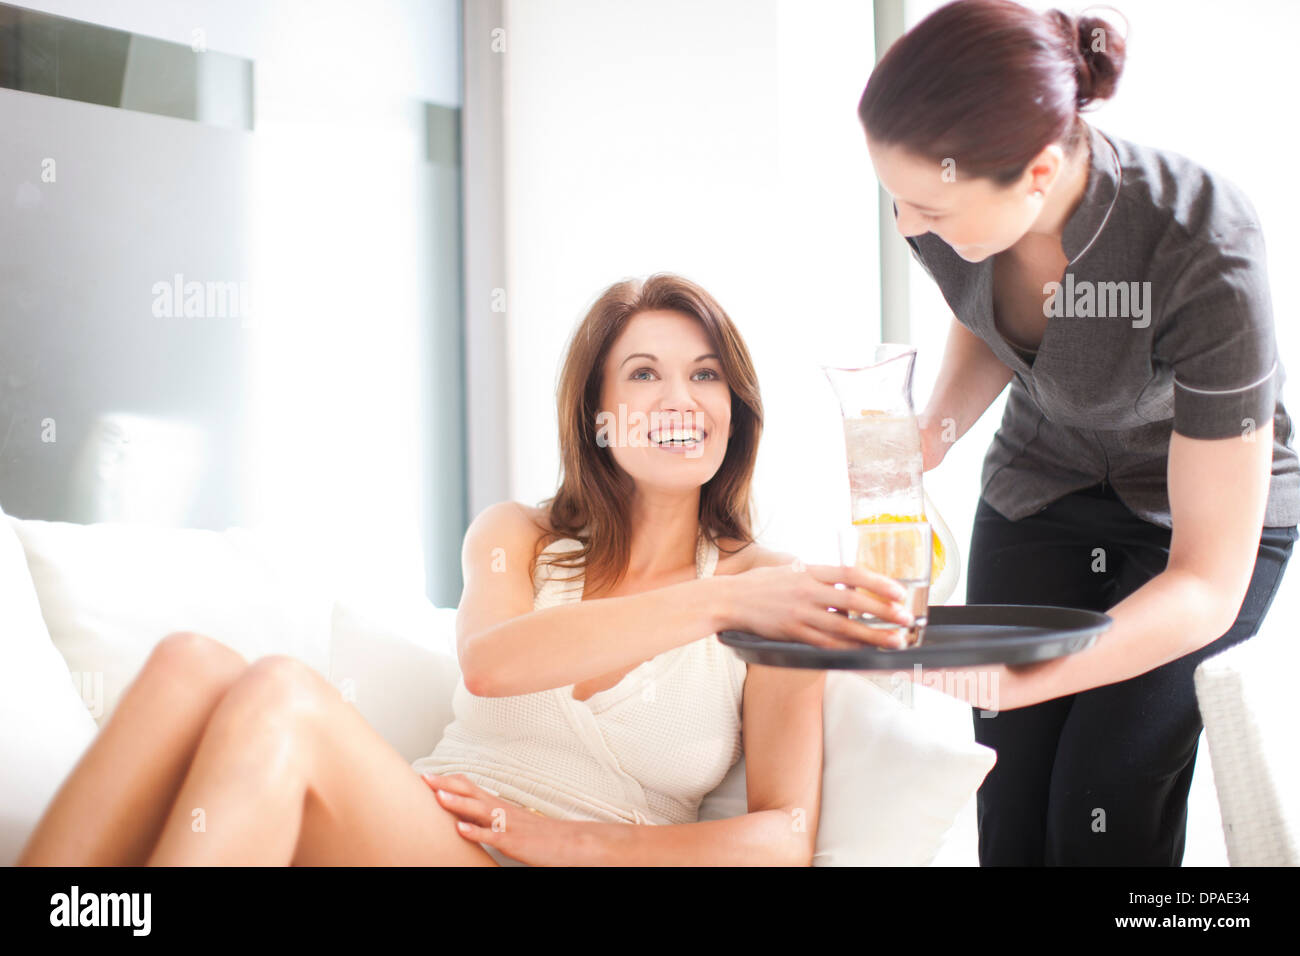 Service worker pouring refreshment for woman poolside - Stock Image